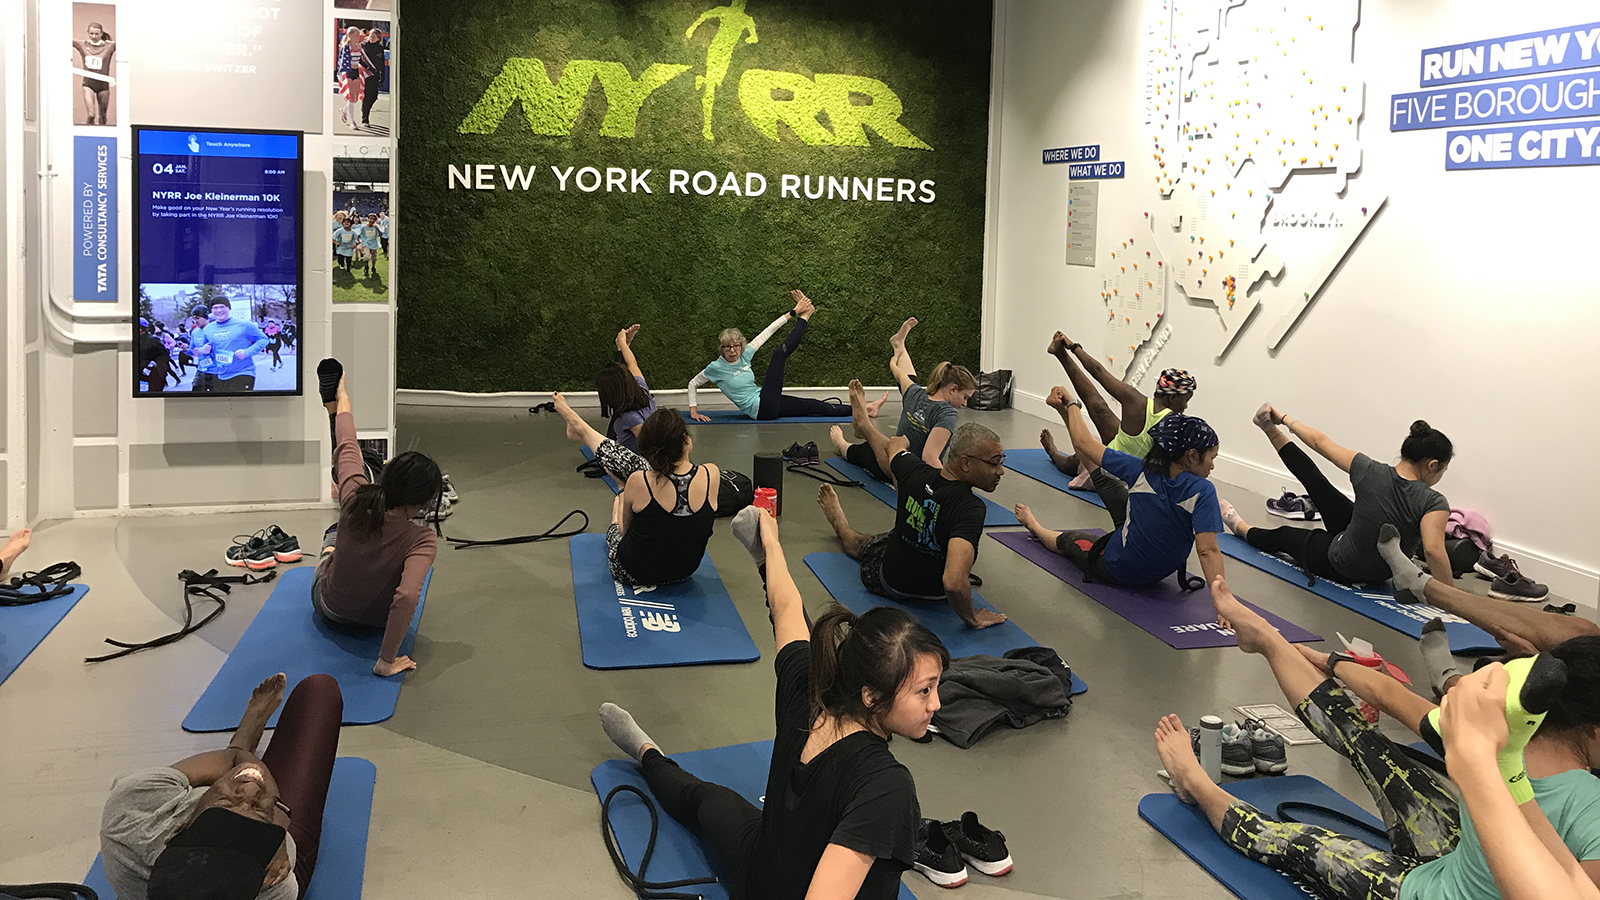 A stretching class in progress at the NYRR Run Center